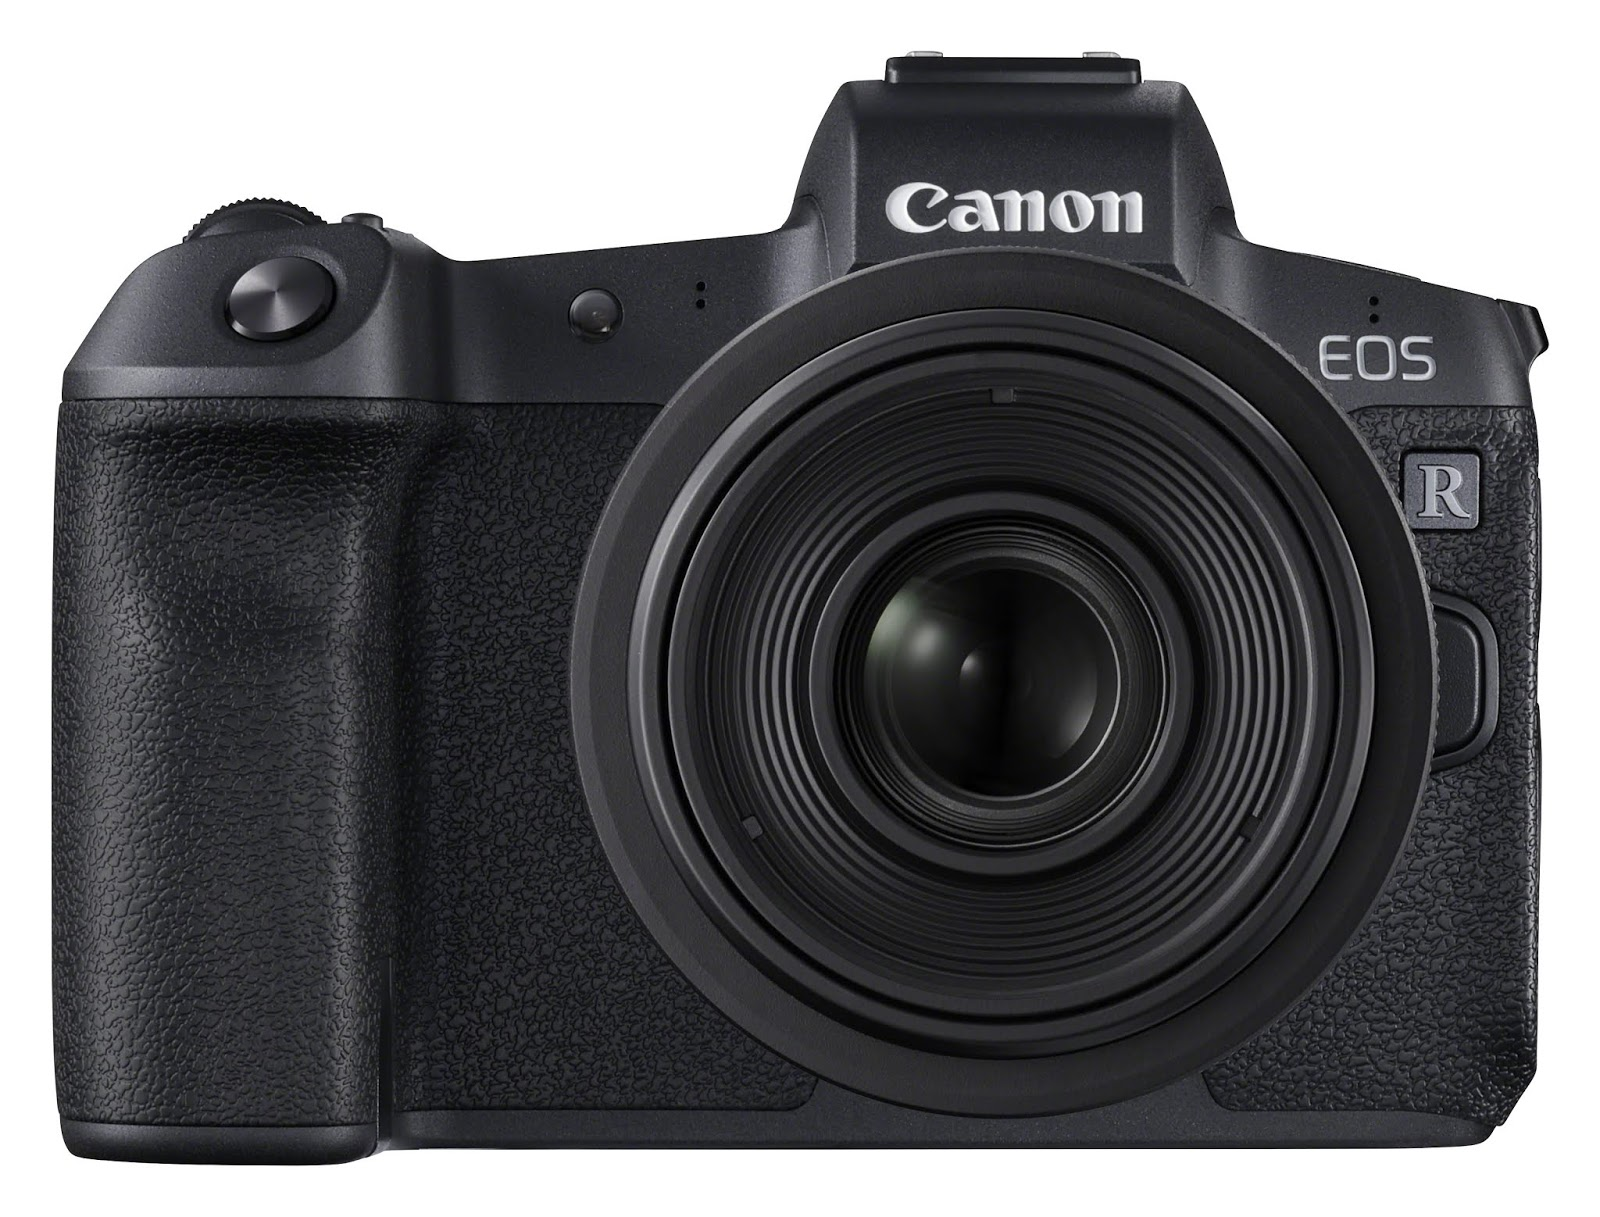 Promised Canon EOS R-series firmware updates now available